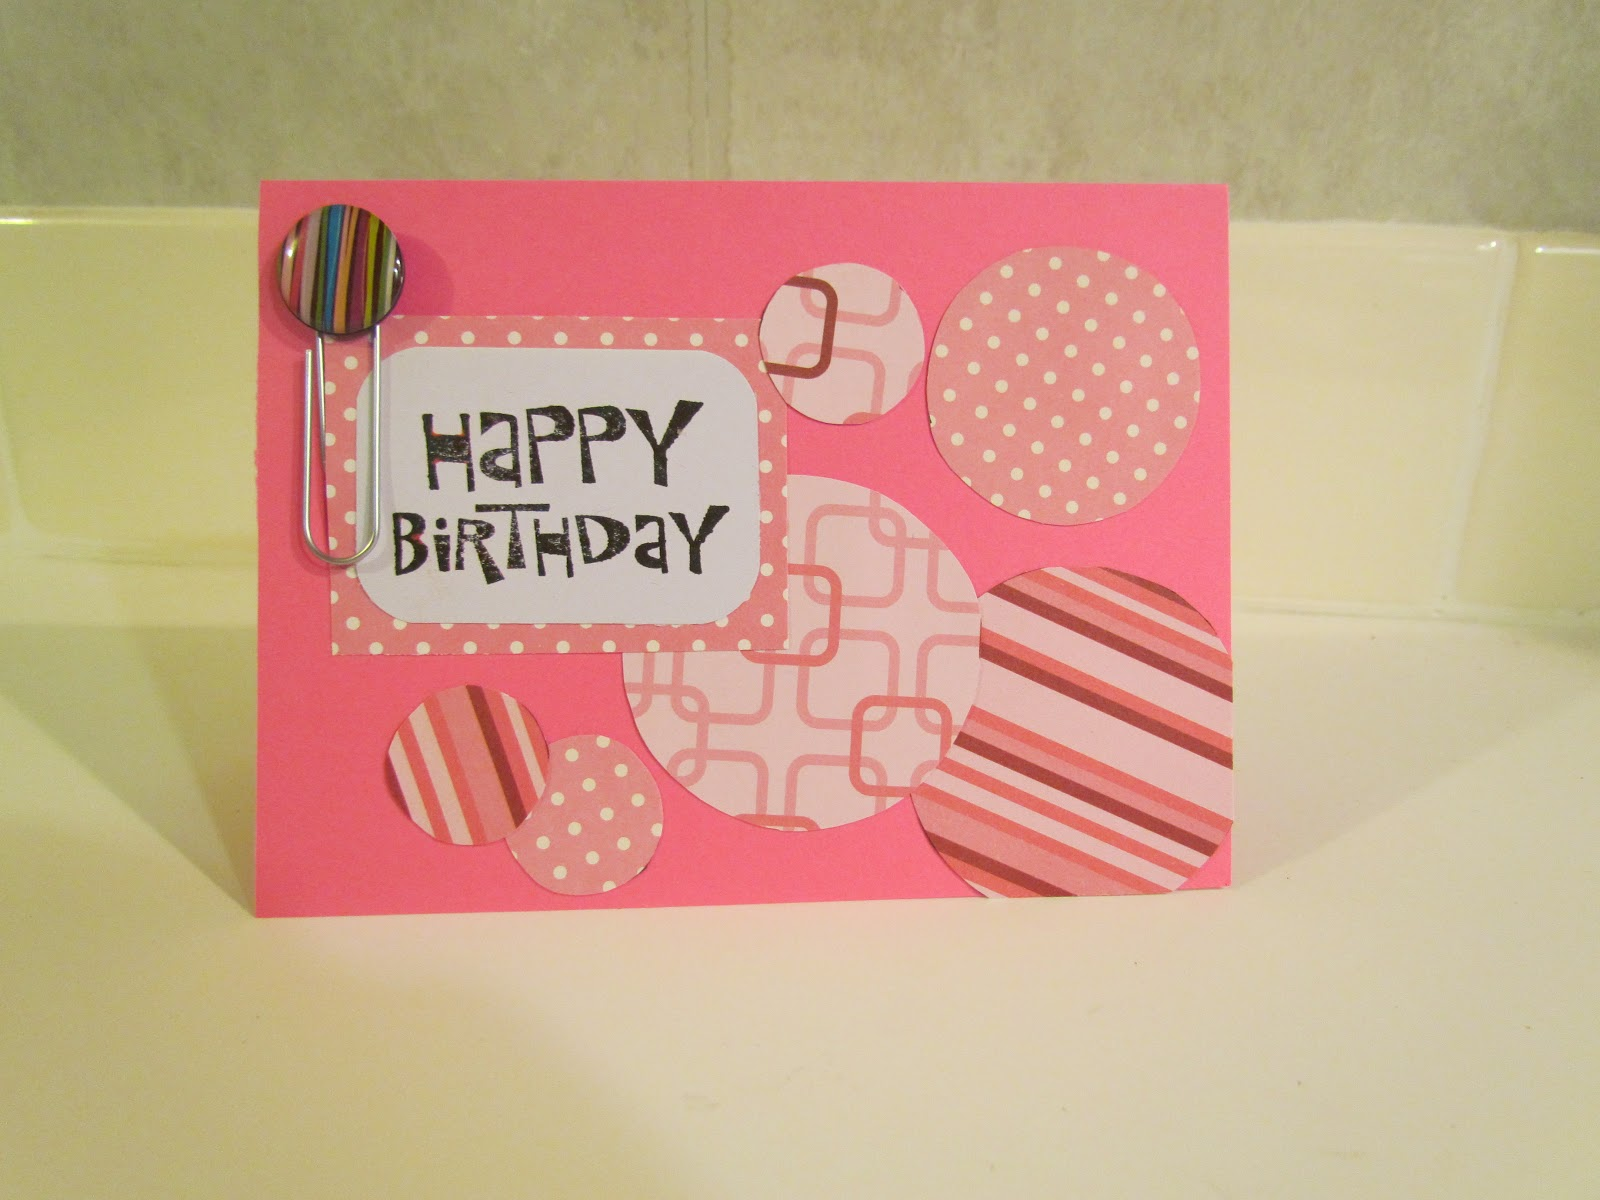 Scrap 4U: Happy Birthday Cards, For Boys Girls, And Adults